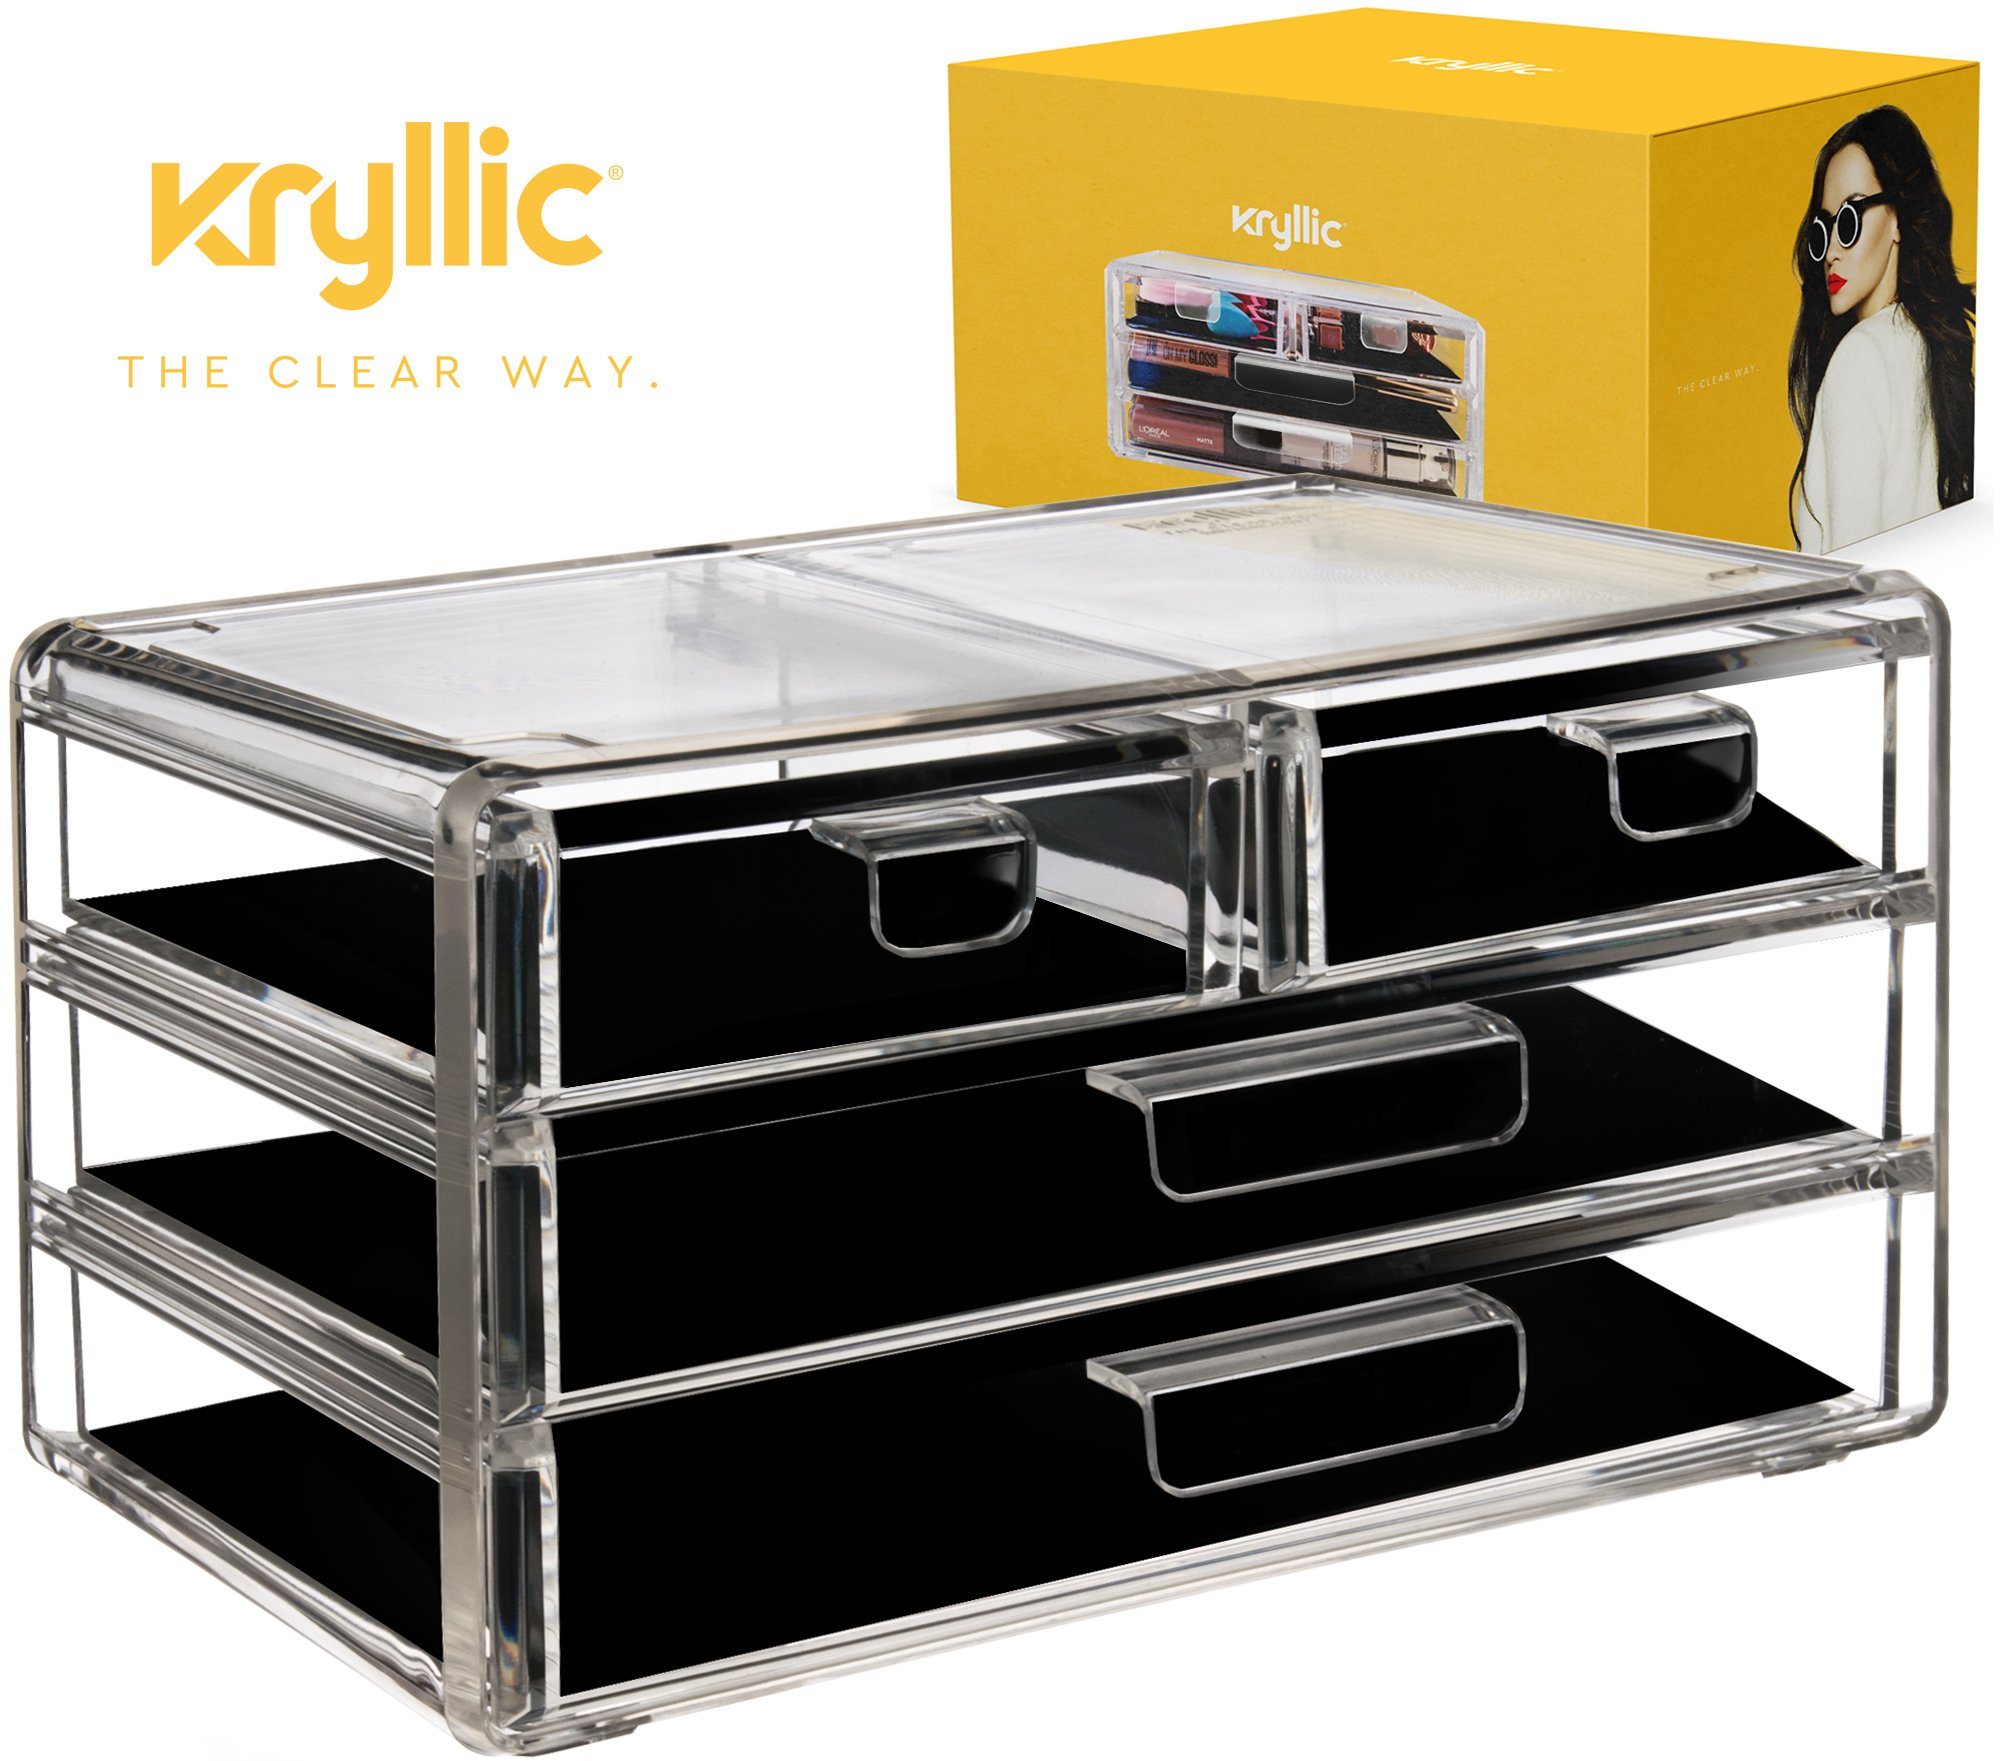 Acrylic Cosmetic jewelry Makeup Organizer - 4 drawers plastic vanity countertop display case storage make up brush nail polish lipstick products accessories bathroom kitchen office desk organization.